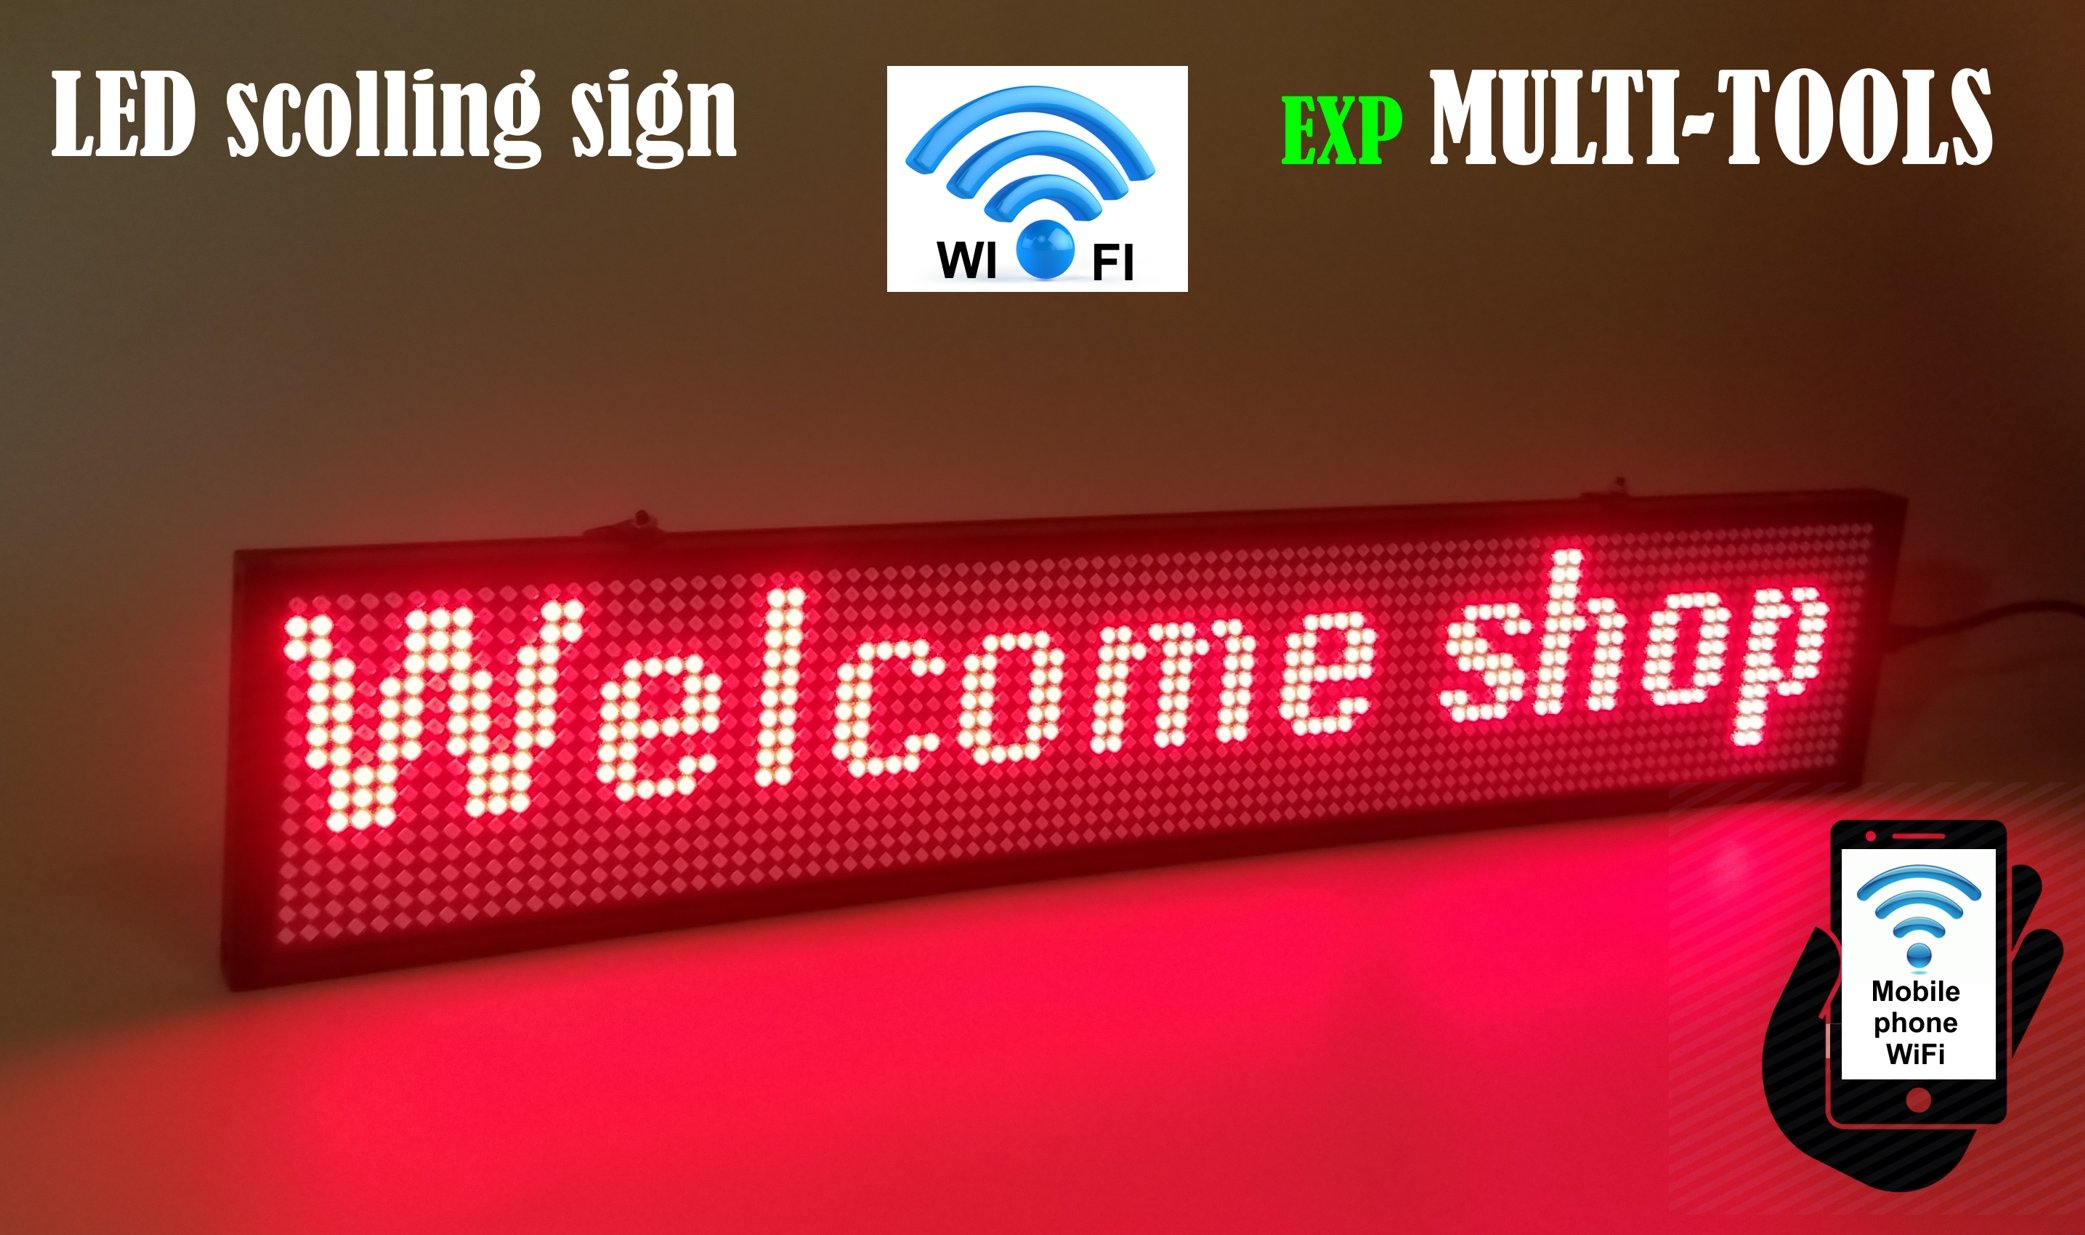 LED Display RED Color with WiFi Connection, LED Scrolling Message Sign, Bright and in New Light auminum housing